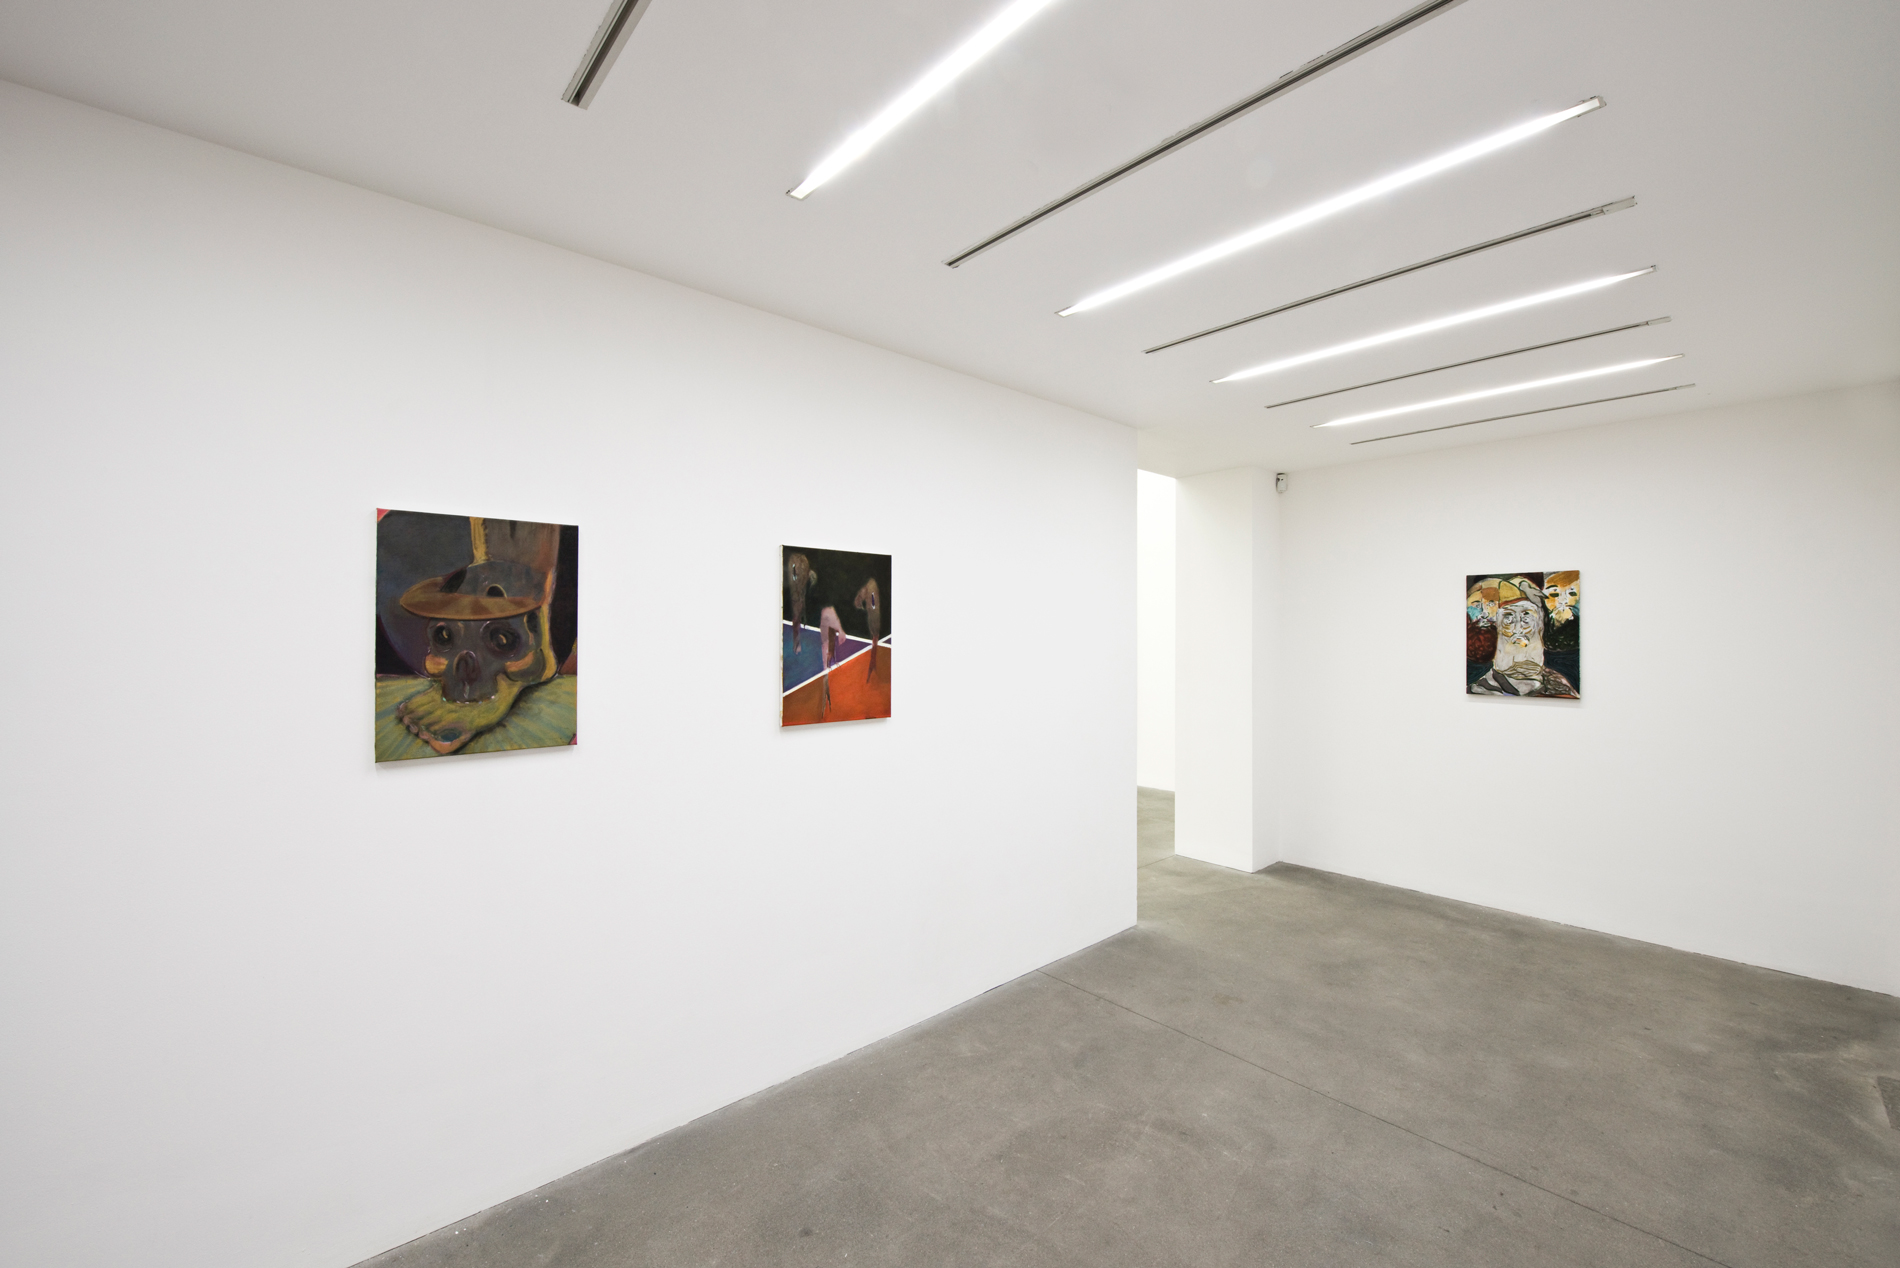 7 - Ryan Mosley at Alison Jacques 2014 London - 21.03.2014